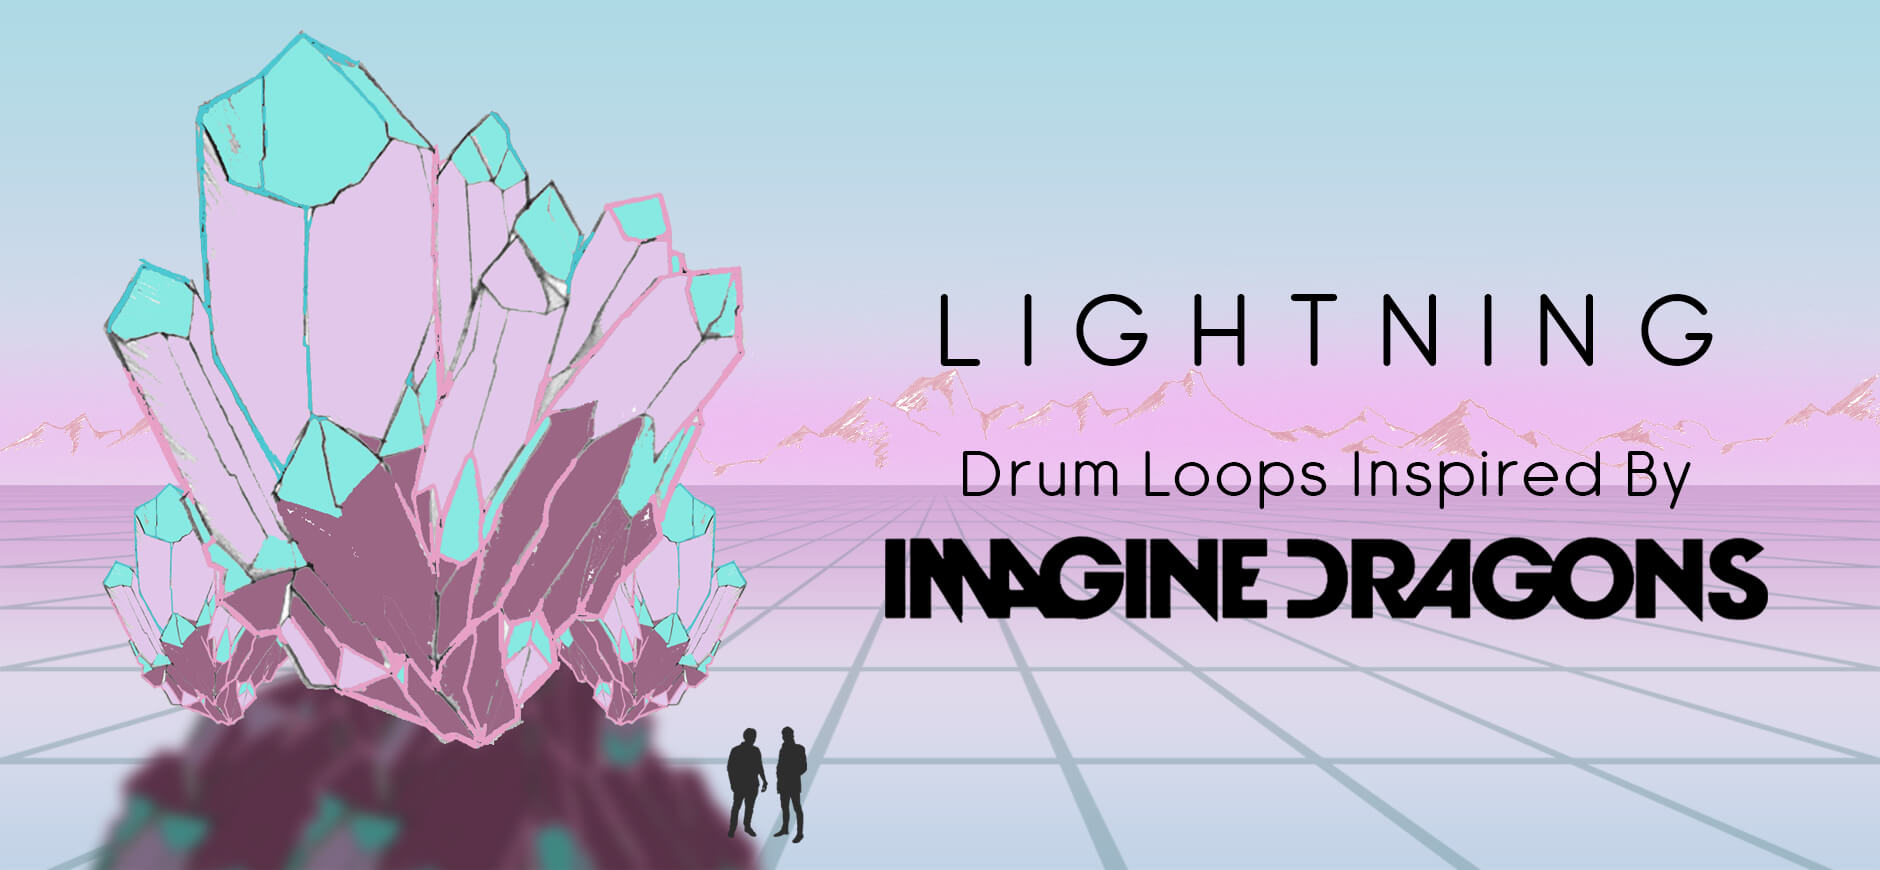 Thunder Drum Loops Inspired by Imagine Dragons